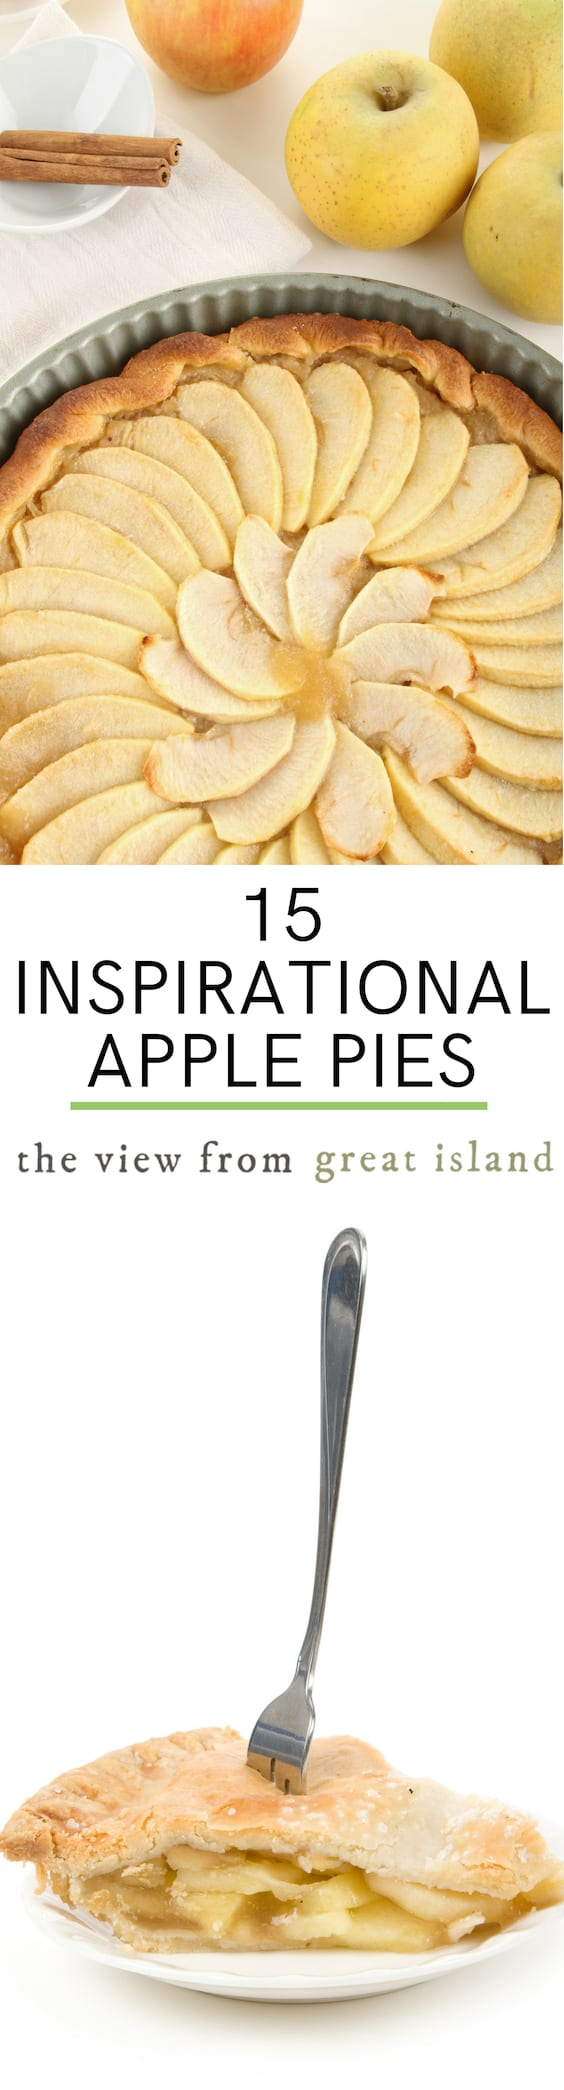 15 Inspirational Apple Pies for the fall and winter season ~ no holiday dessert table is complete without one of these glorious pies! #pie #dessert #thanksgiving #Christmas #pastry #homemade #recipe #lattice #doublecrust #crumble #apples